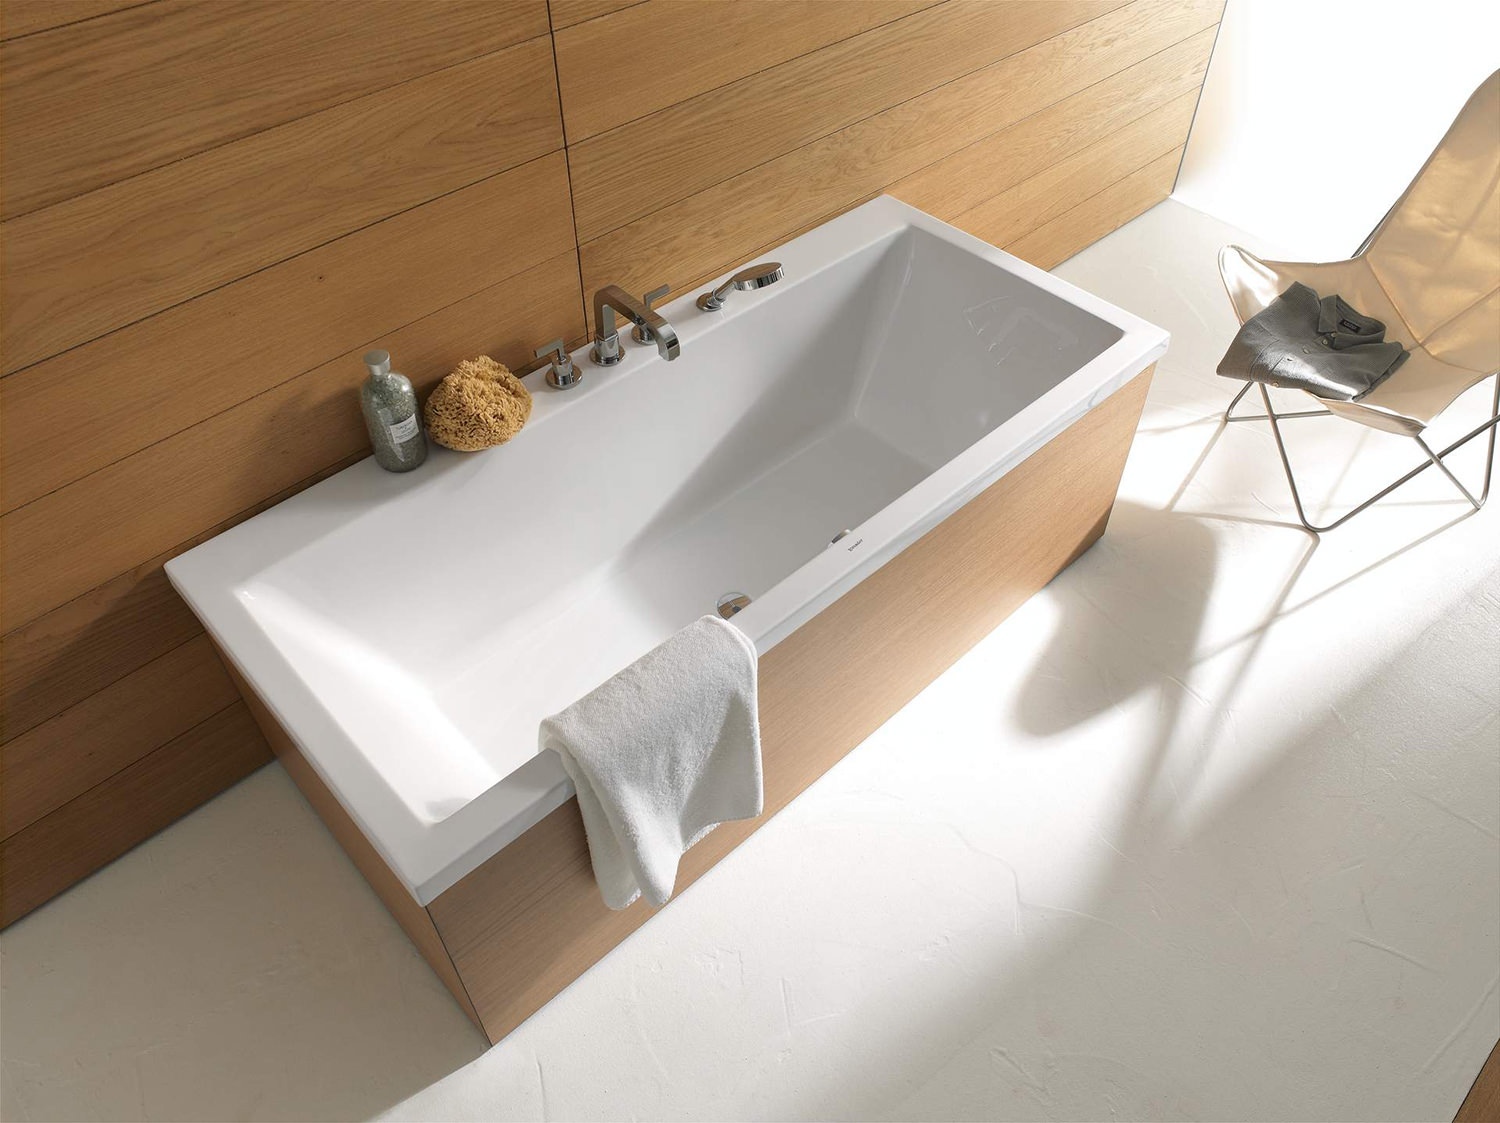 duravit photo baths tub ideas free bathtub bathtubs phonedetectivehub cape by of amazing x standing cod com